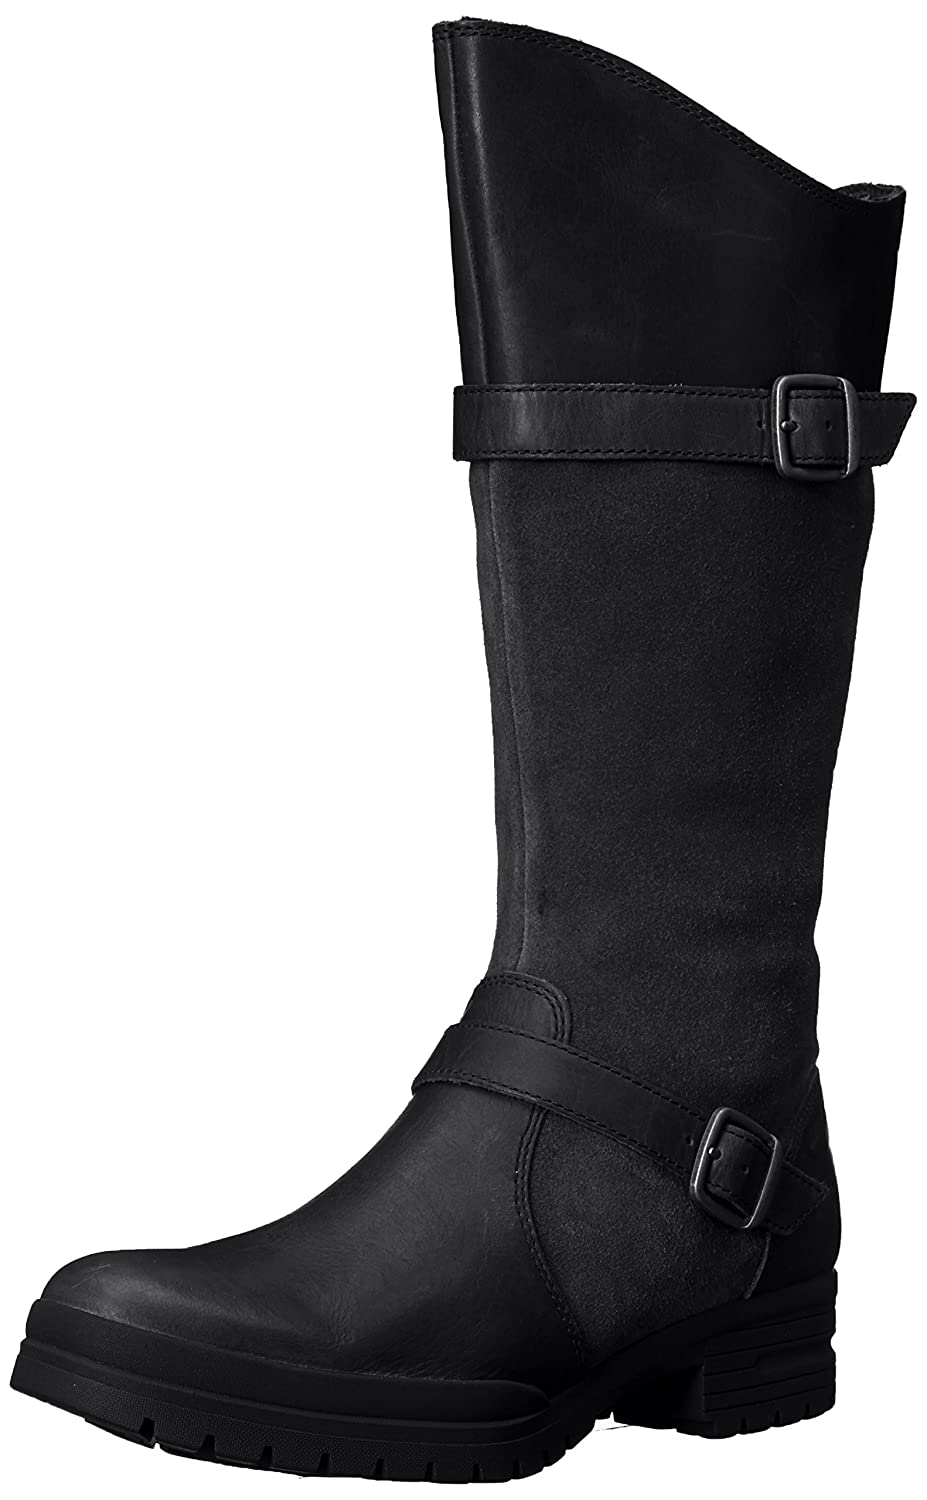 Merrell Women's City B01MZ0GOVY Leaf Tall Snow Boot B01MZ0GOVY City 6 B(M) US|Black 4147b9